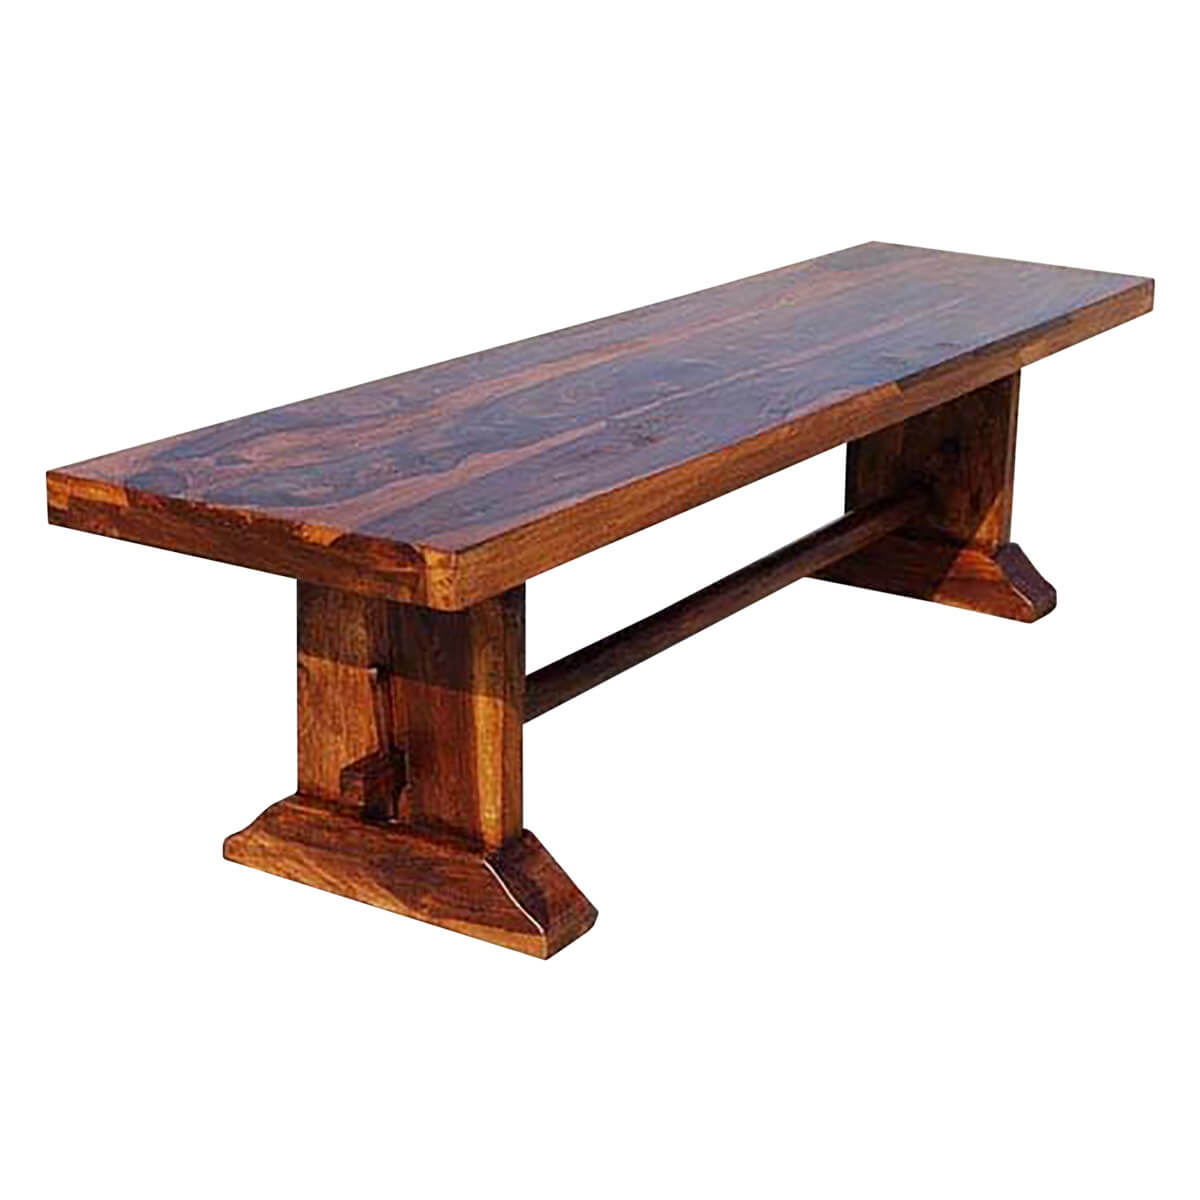 Louvre Rustic Solid Wood Indoor Wooden Bench